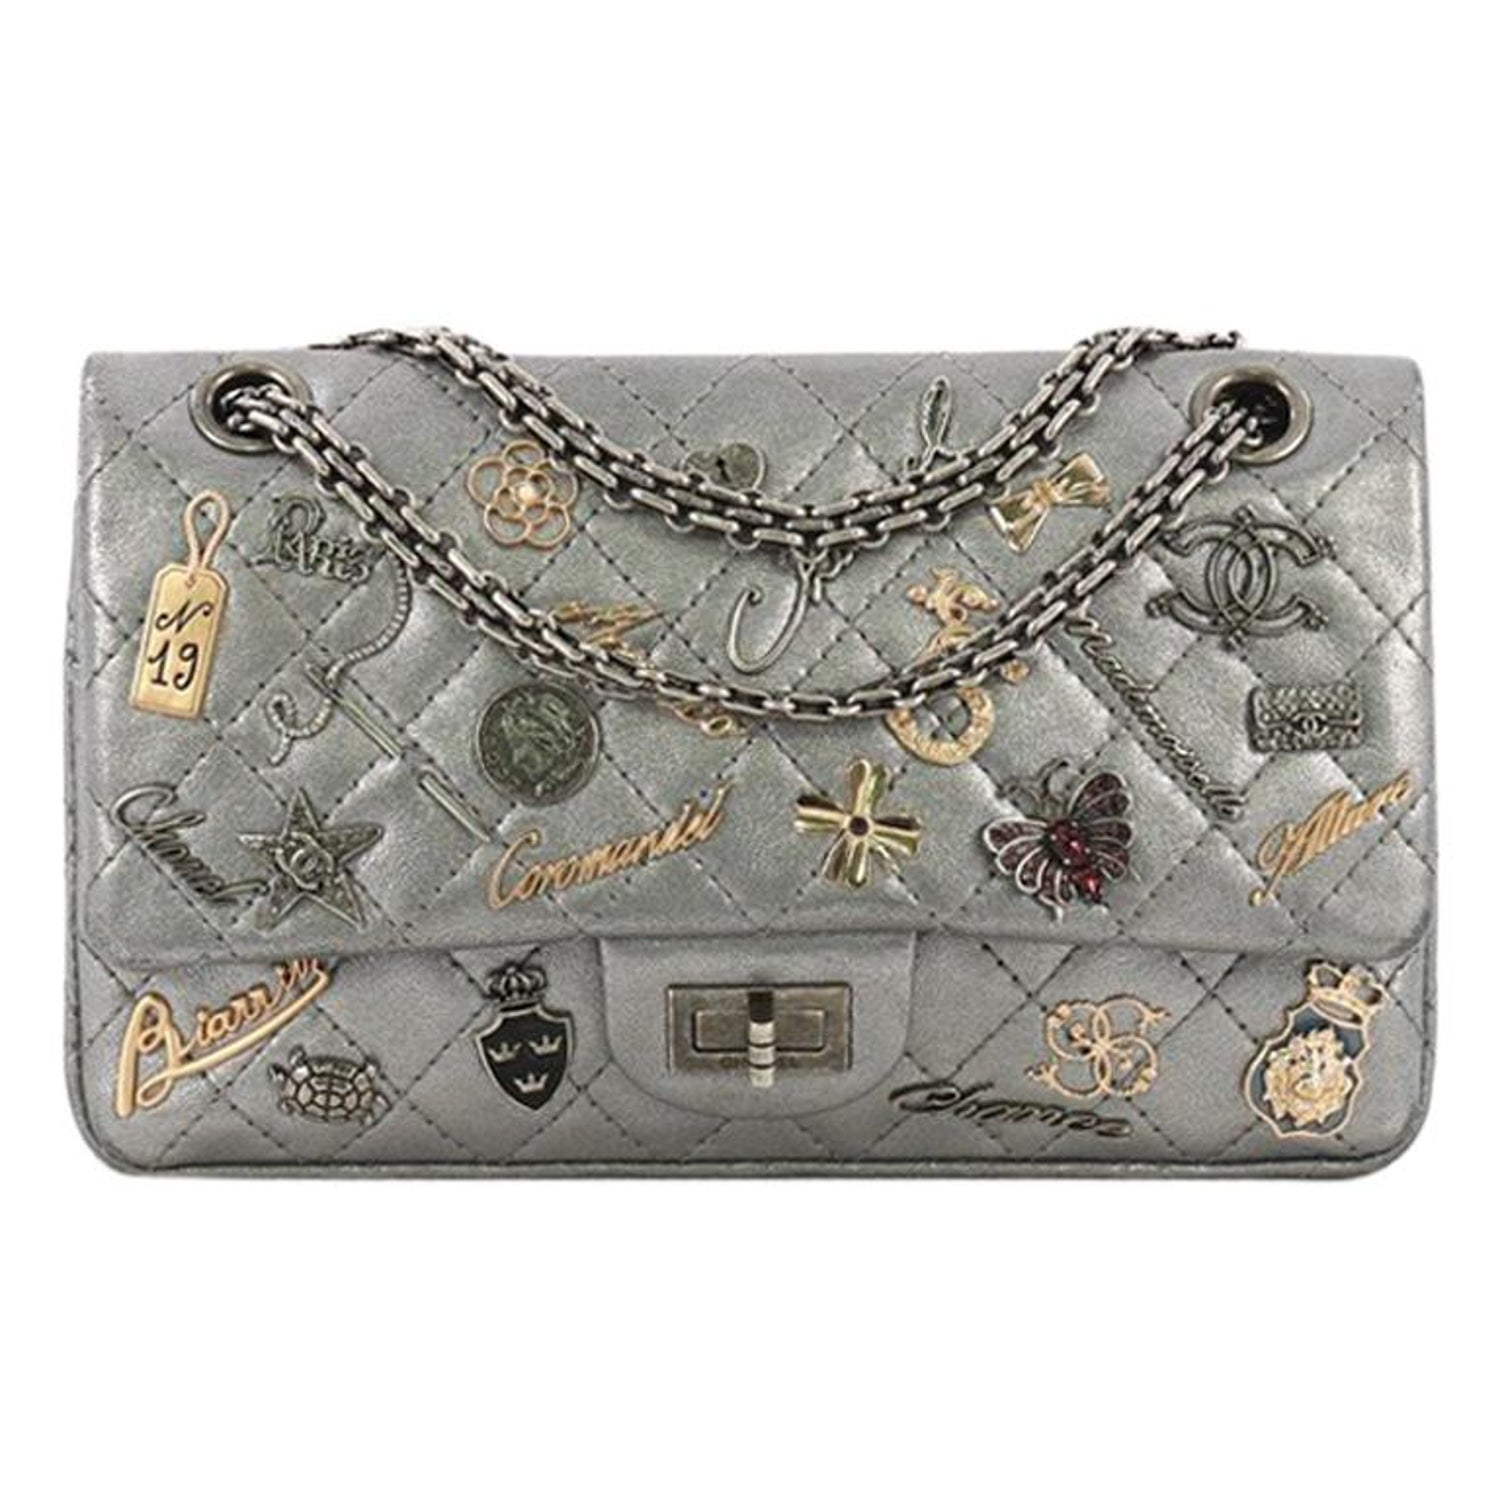 a71b016769 Chanel Lucky Charms Reissue 2.55 Flap Bag Quilted Aged Calfskin 225